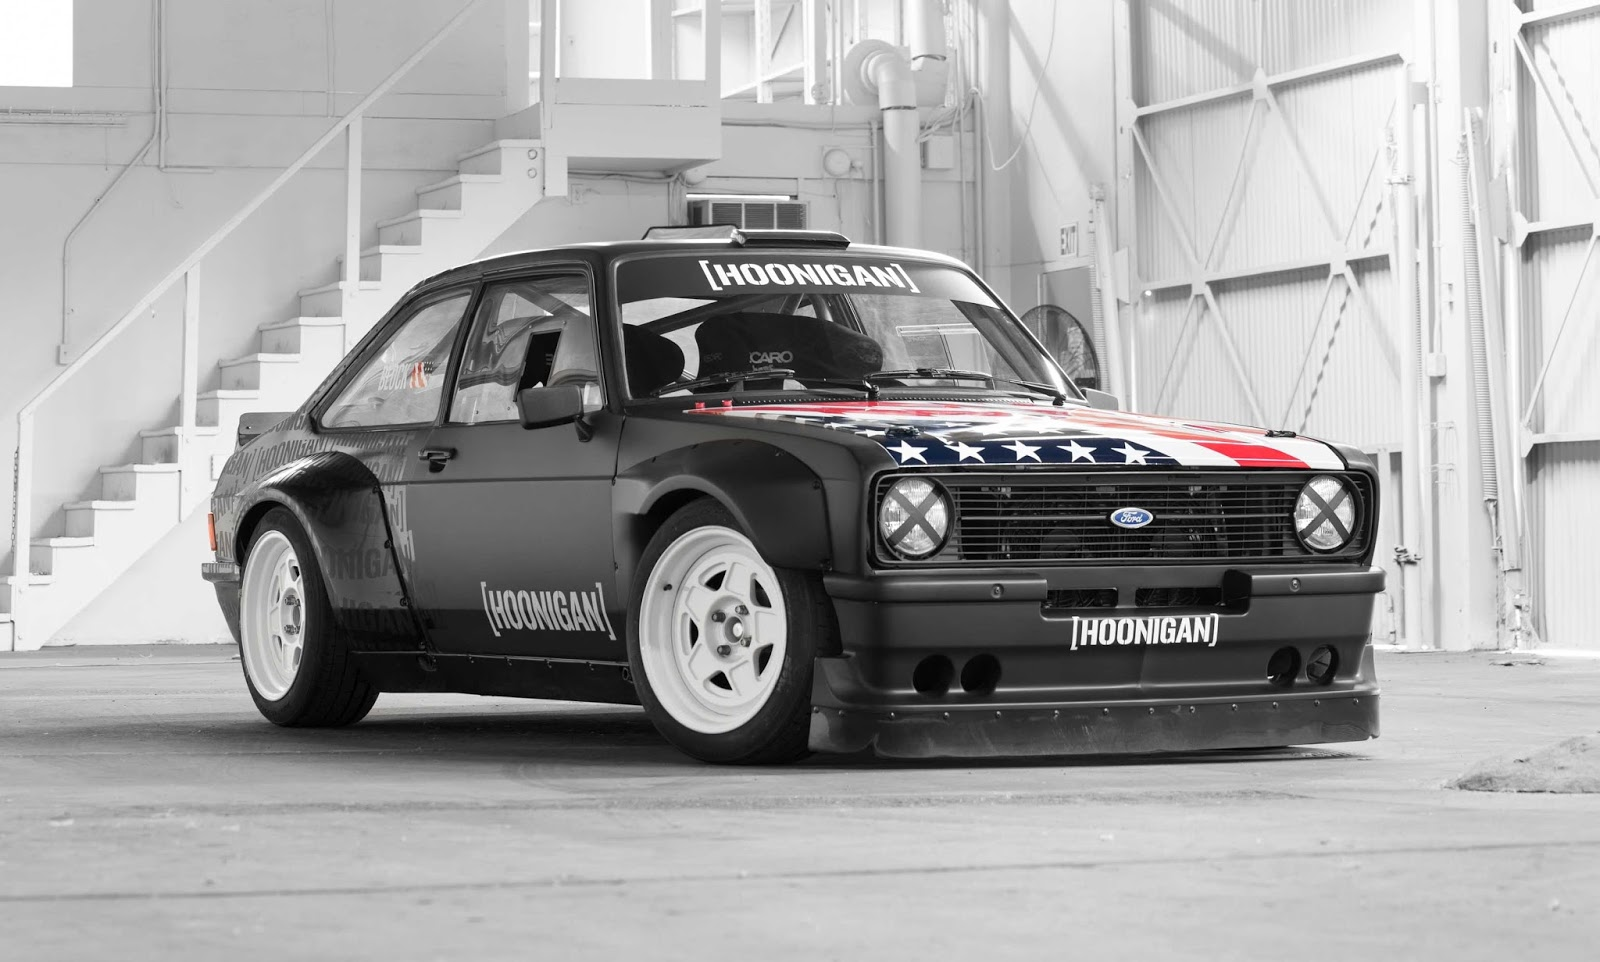 Now, I Really Want A Ford Escort Mk II